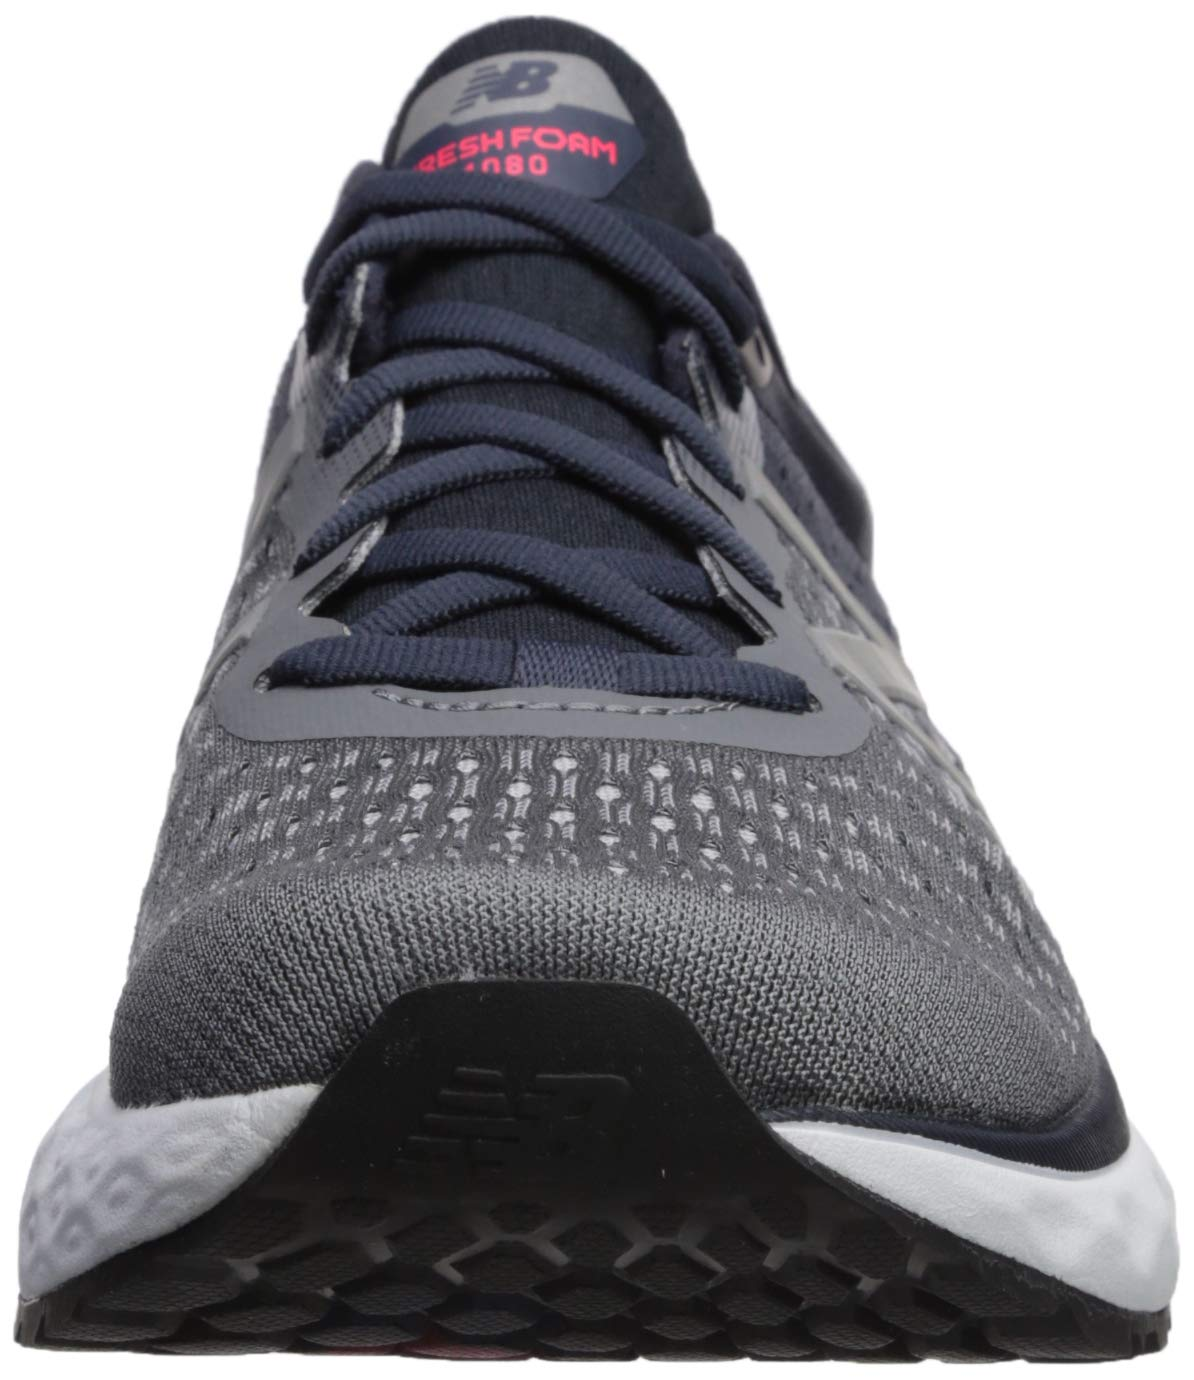 New Balance Men's 1080v9 Fresh Foam Running Shoe, Gunmetal/Outerspace/Energy red, 7 D US by New Balance (Image #4)